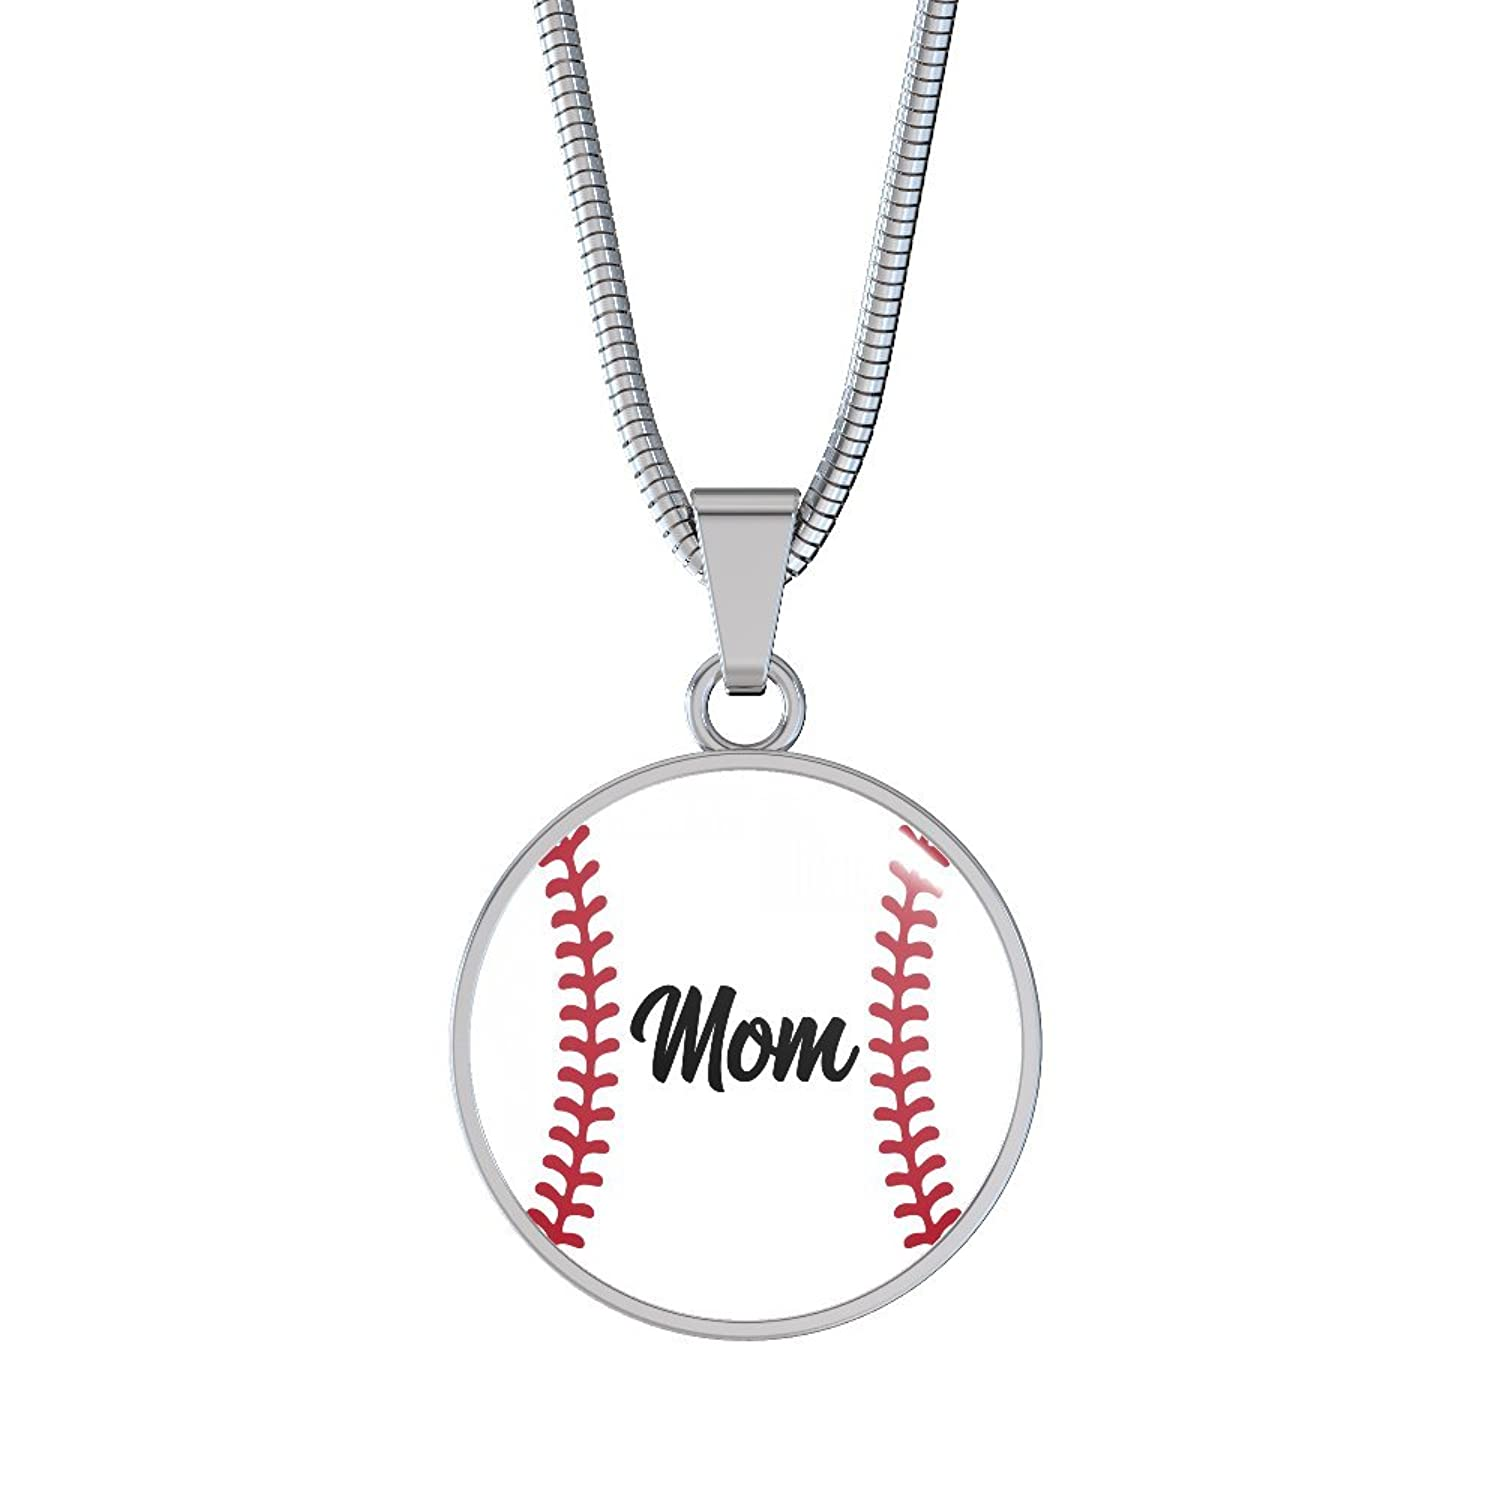 shineon baseball products pendant necklace